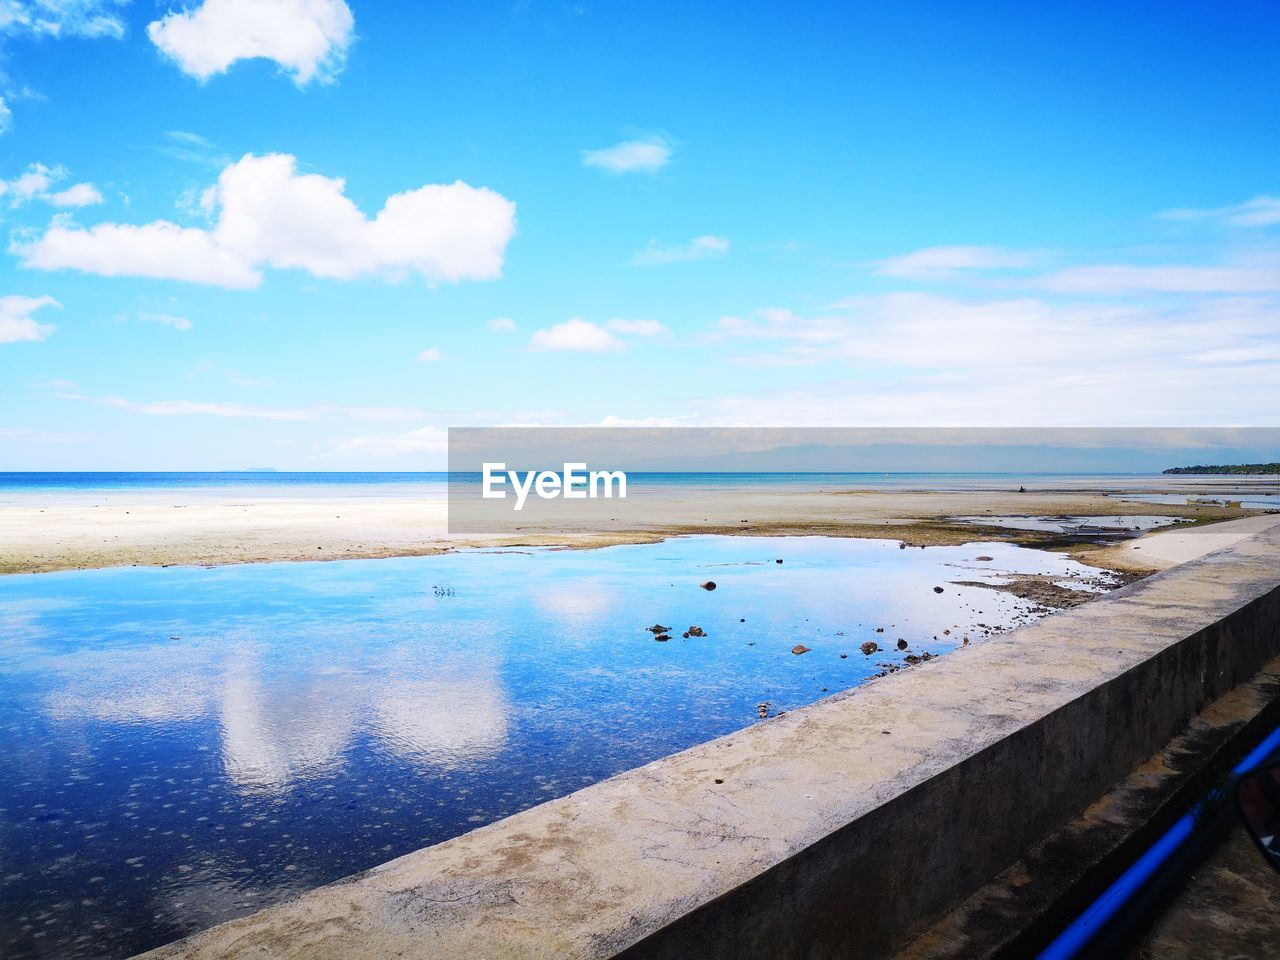 water, cloud - sky, sky, scenics - nature, beauty in nature, blue, tranquil scene, sea, tranquility, day, nature, horizon, horizon over water, no people, reflection, outdoors, non-urban scene, idyllic, land